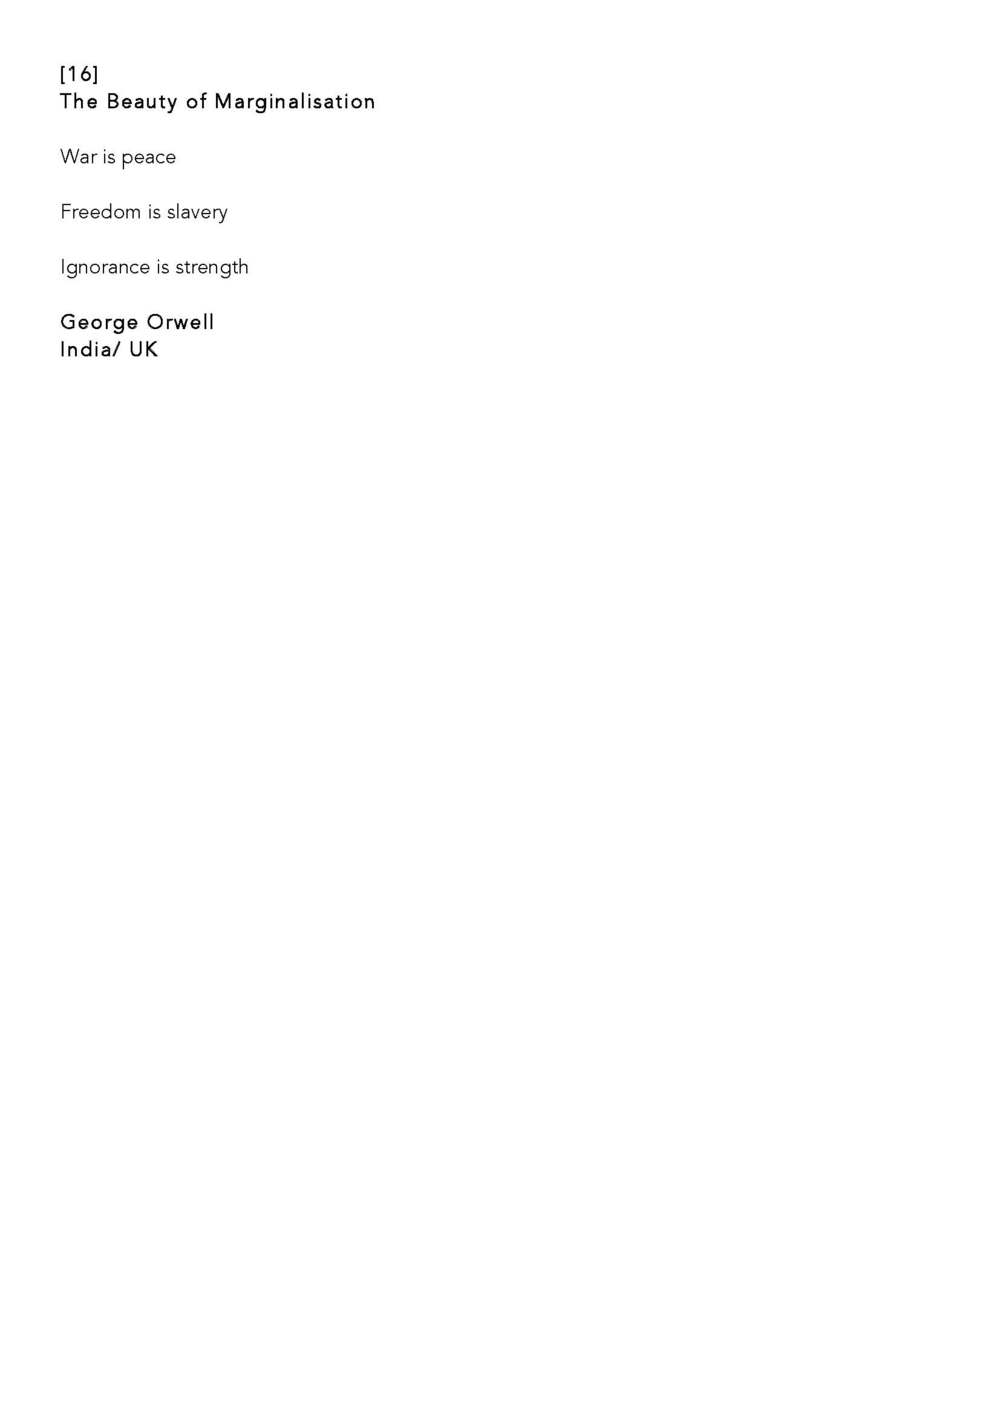 Poetry Collection - Everyone can Poetry _ For 16 Sept 2014_Page_16.jpg